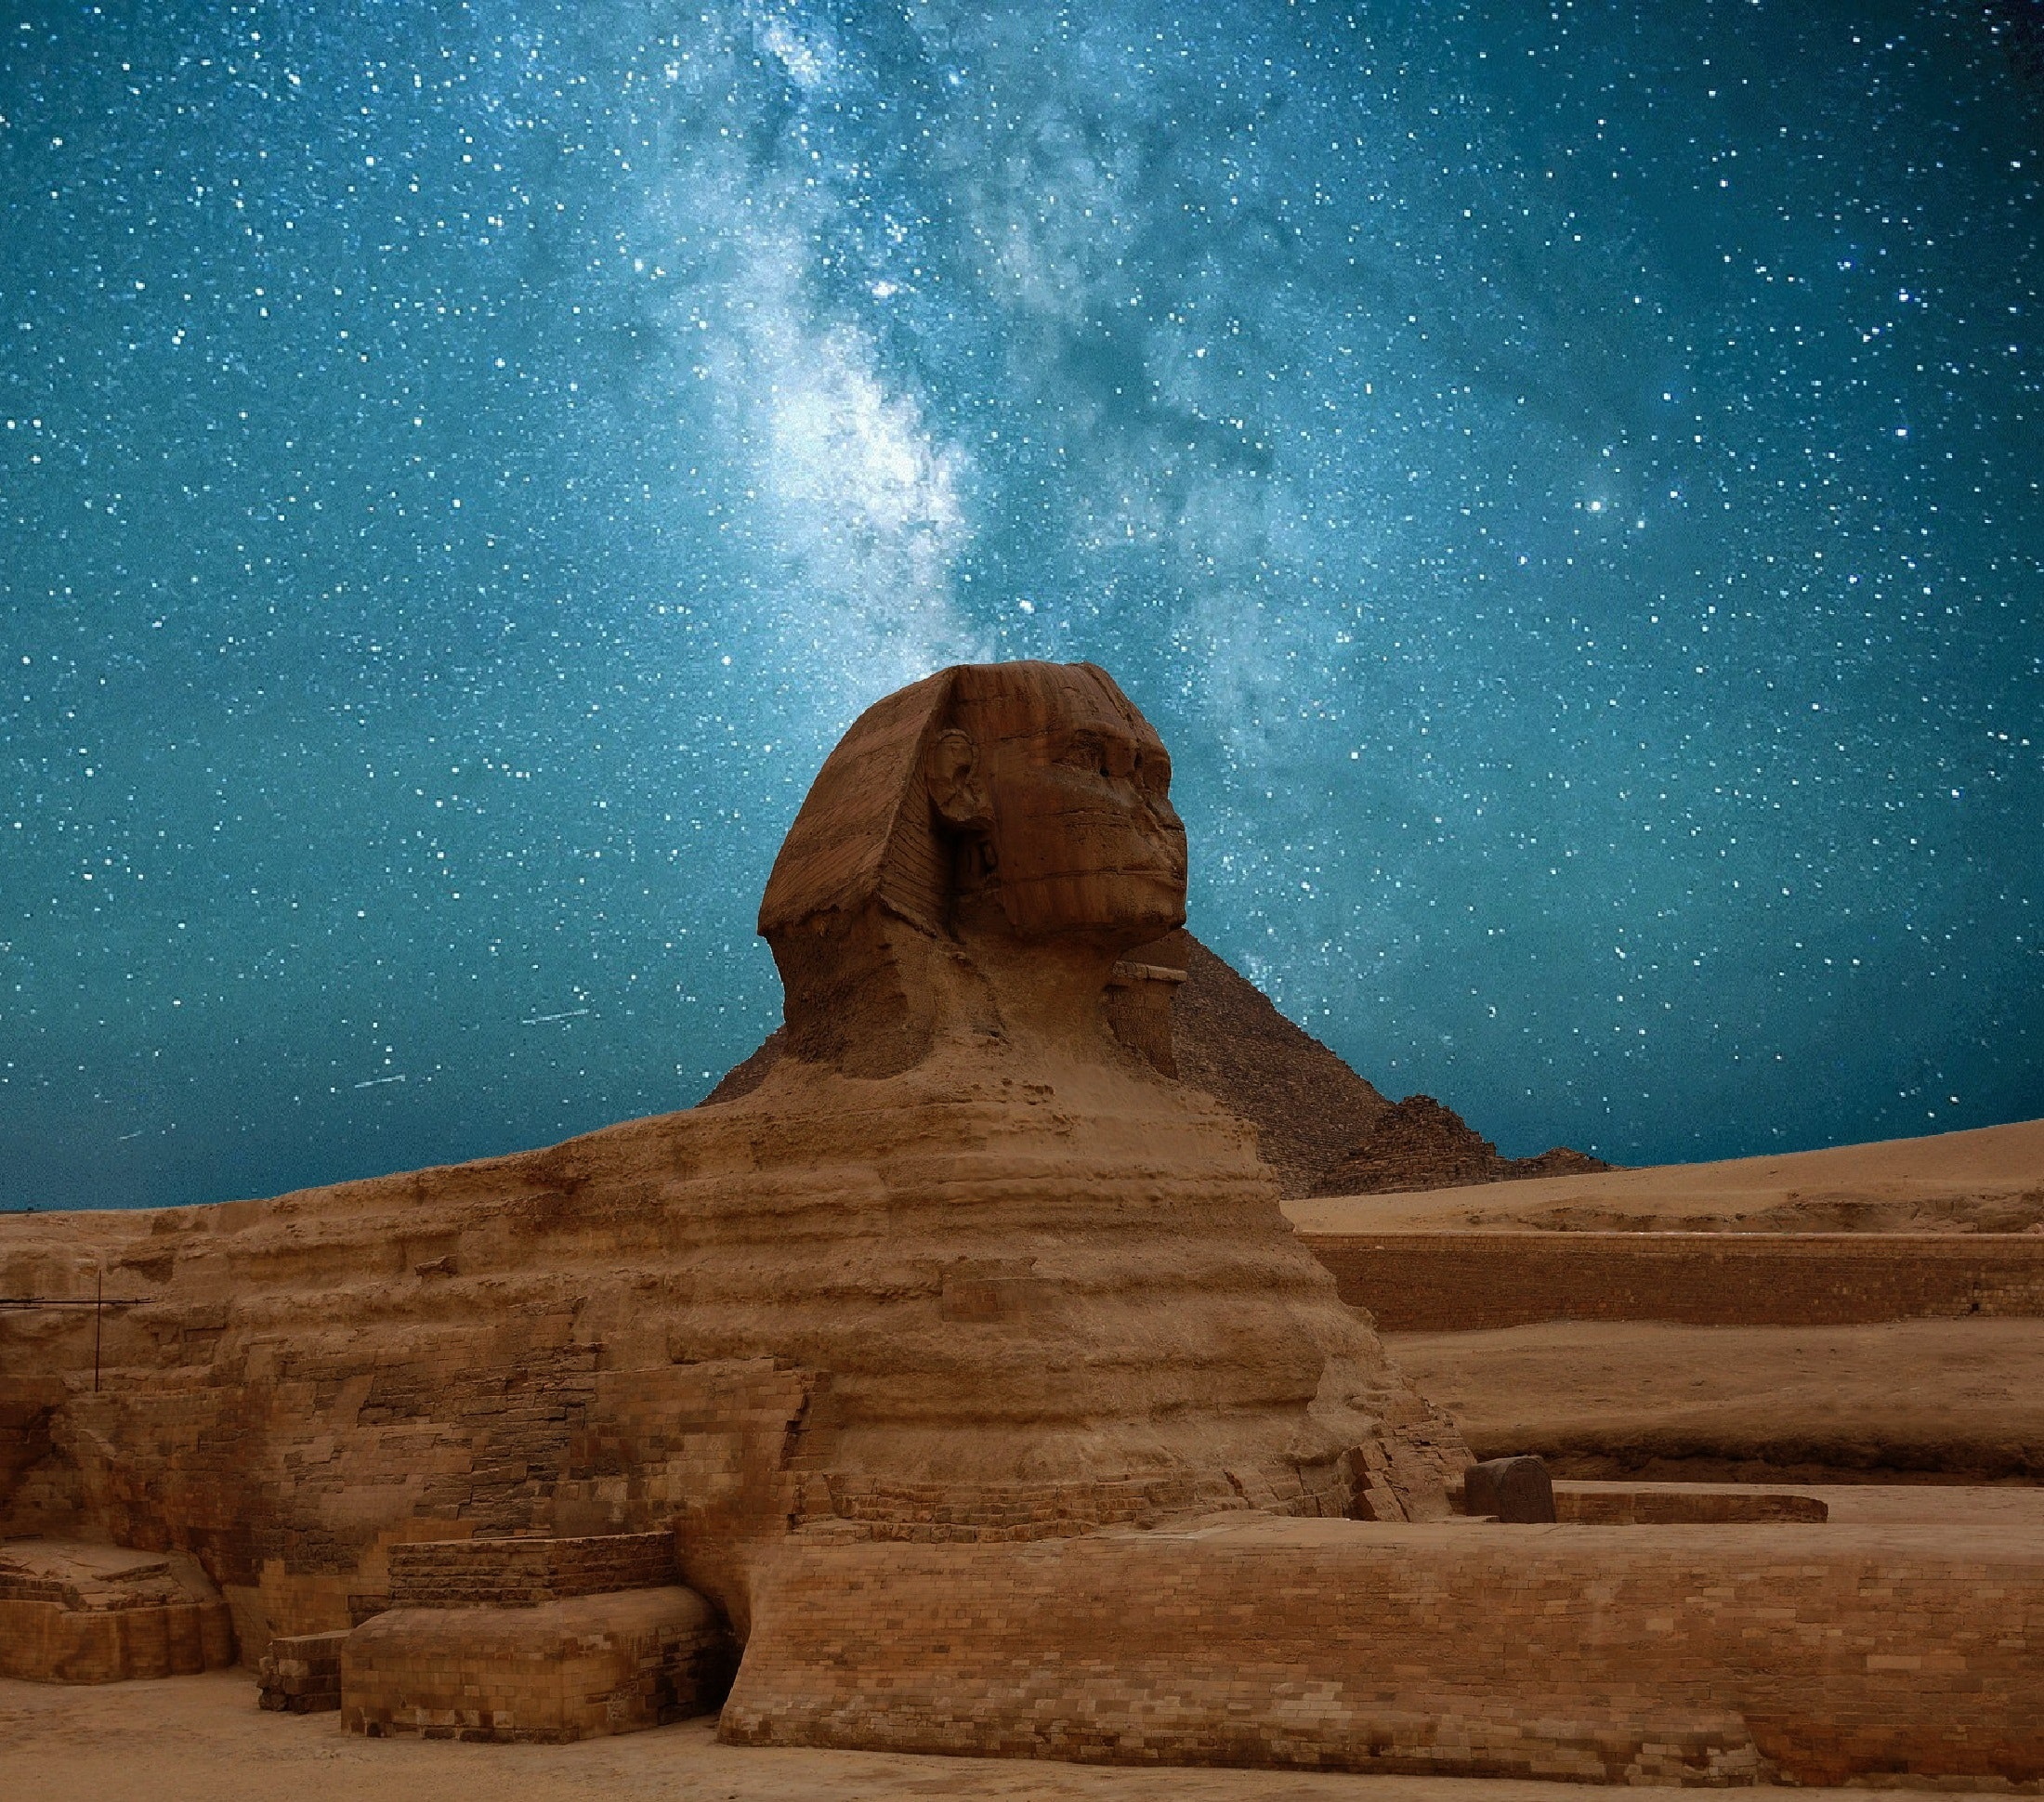 Ancient Egypt at night